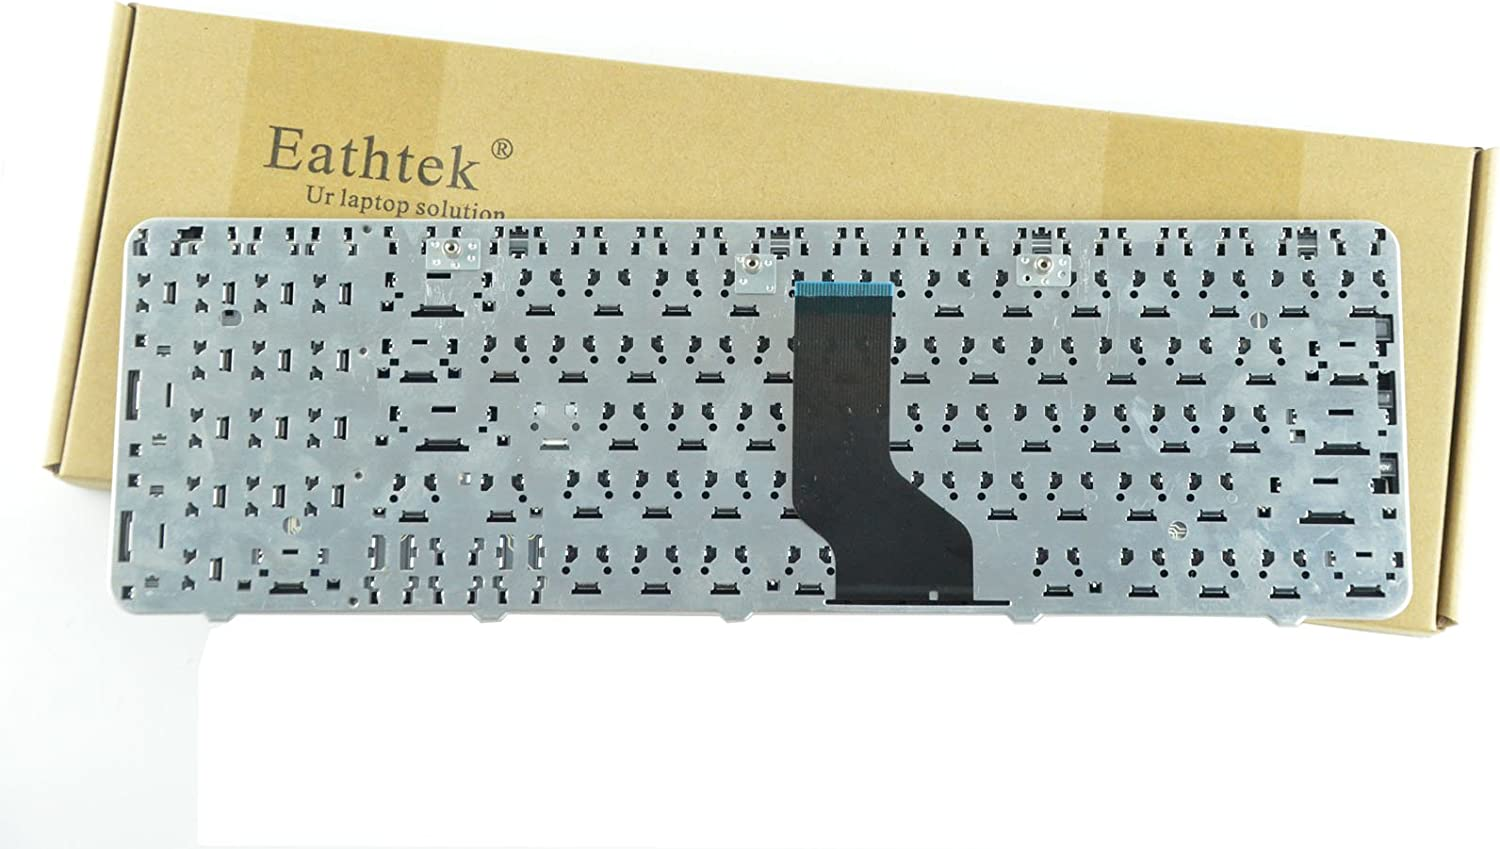 Eathtek Replacement Keyboard for HP G60-519WM G60-438NR G60-630US G60-635DX G...